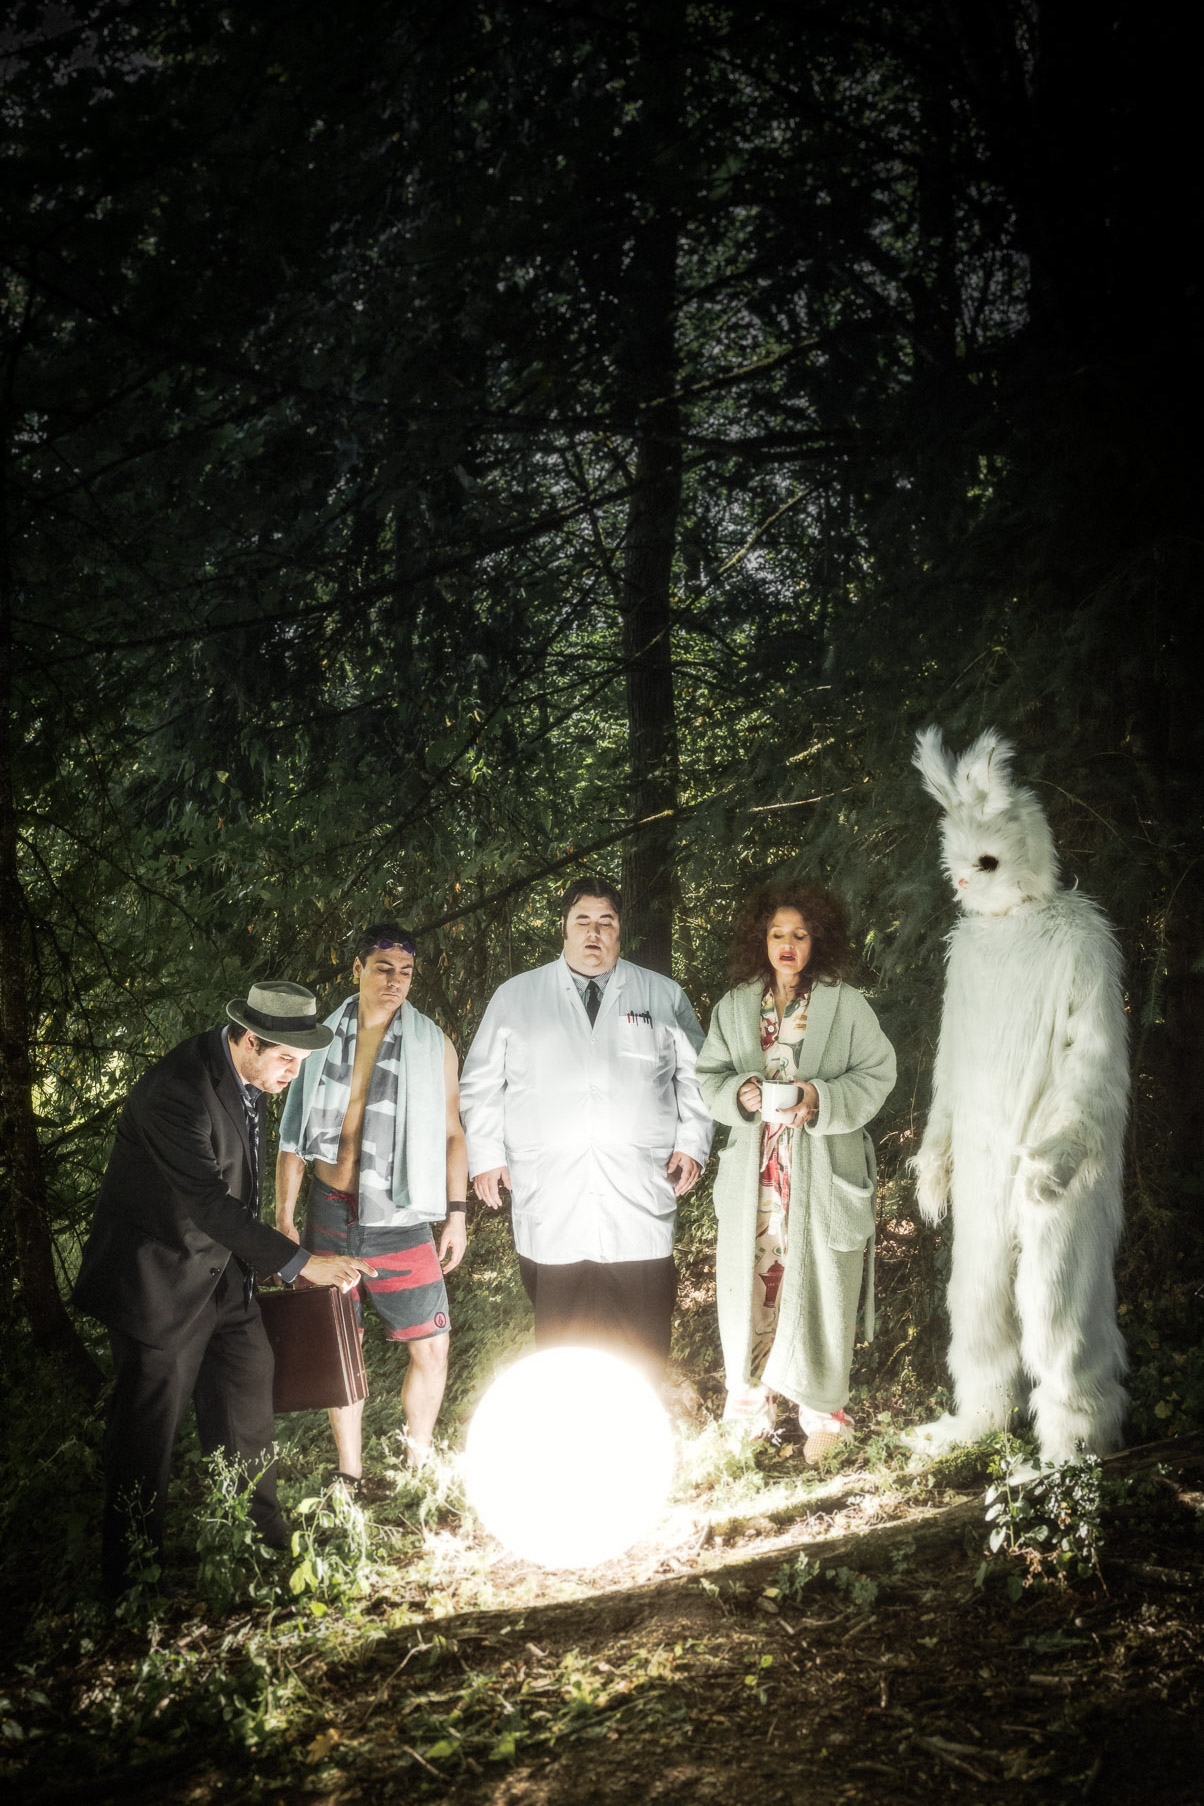 Moody scene of sketch Comedy actors Jason Rouse, Lori Ferraro, Ted Douglass, Andrew Harris and Tony St Clair in Wonderland Sketch Comedy. The performers surround a glowing white ball. The Donnie Darko rabbit is there too. Poster art by Andy Batt